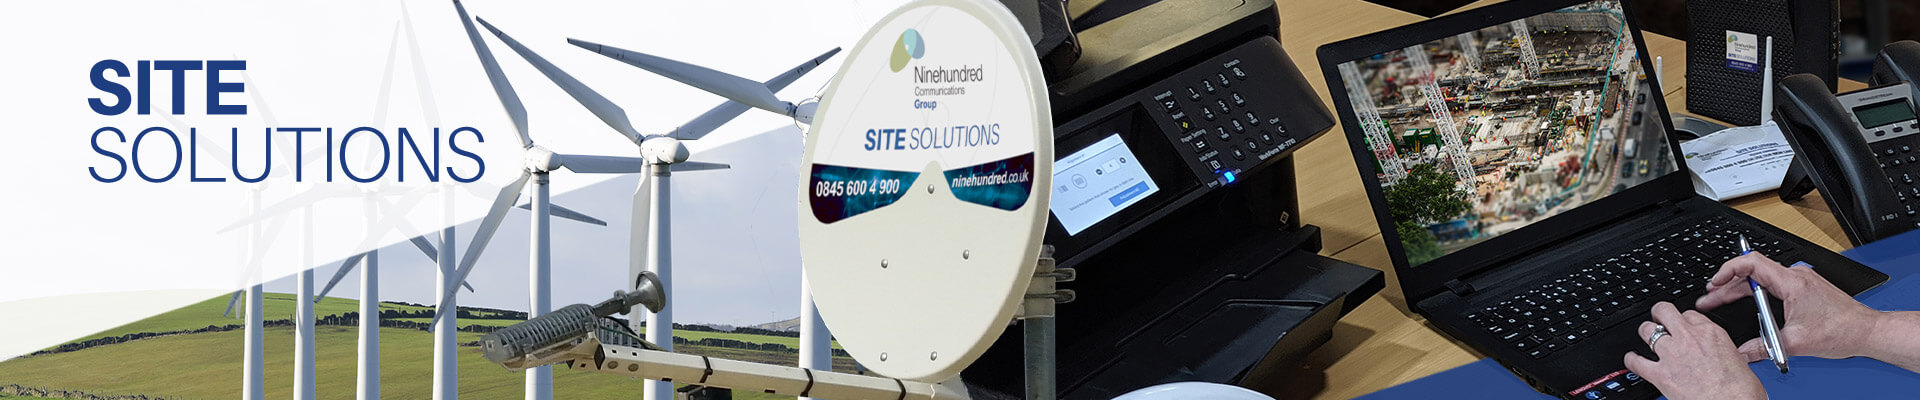 Site Solutions Division Banner Image